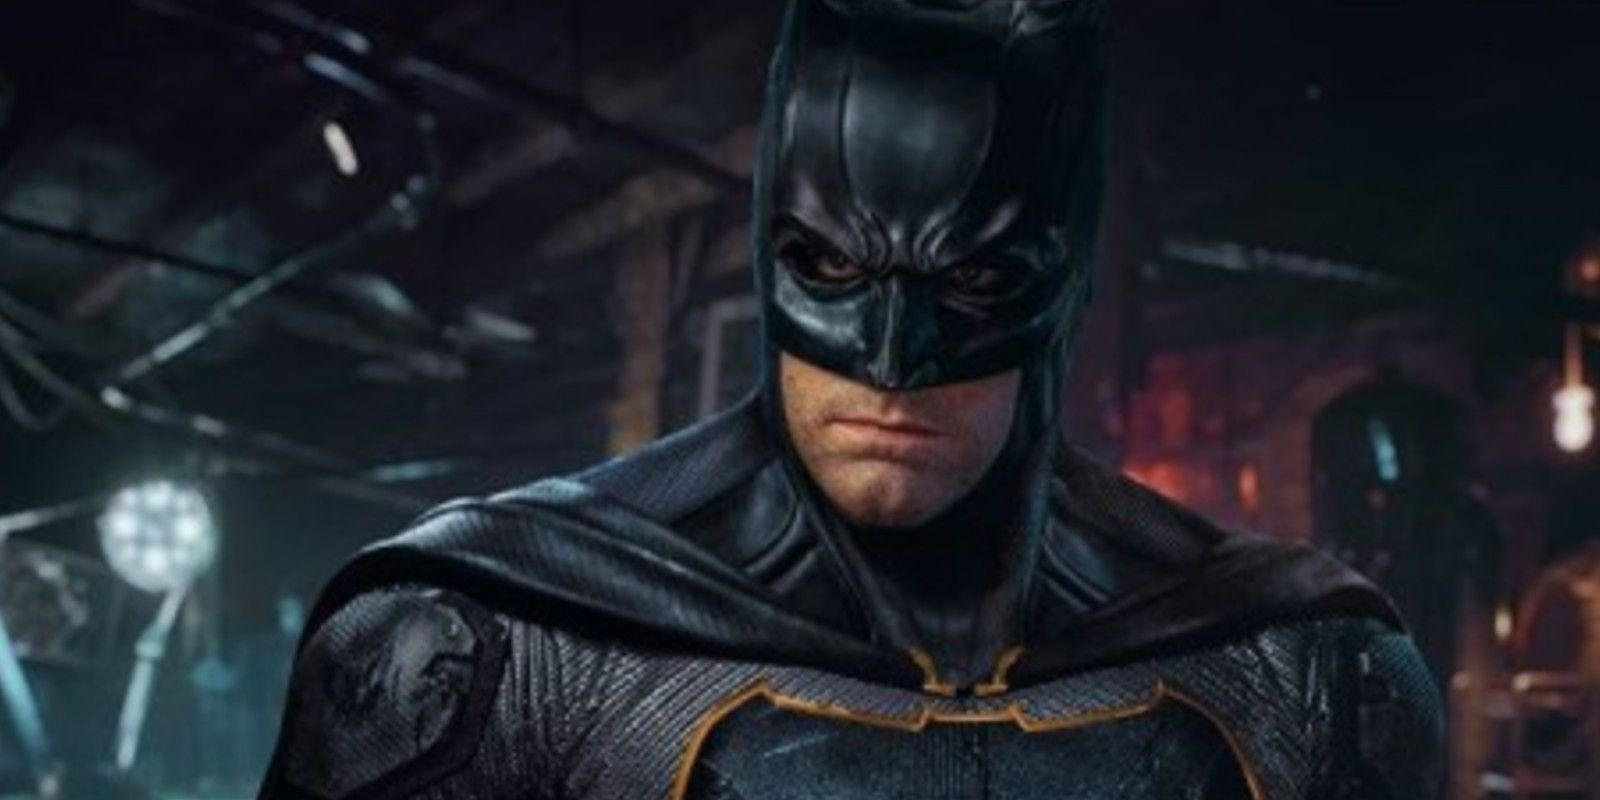 Ben Affleck's Batman Gets DC Rebirth Inspired Suit In Fan Art